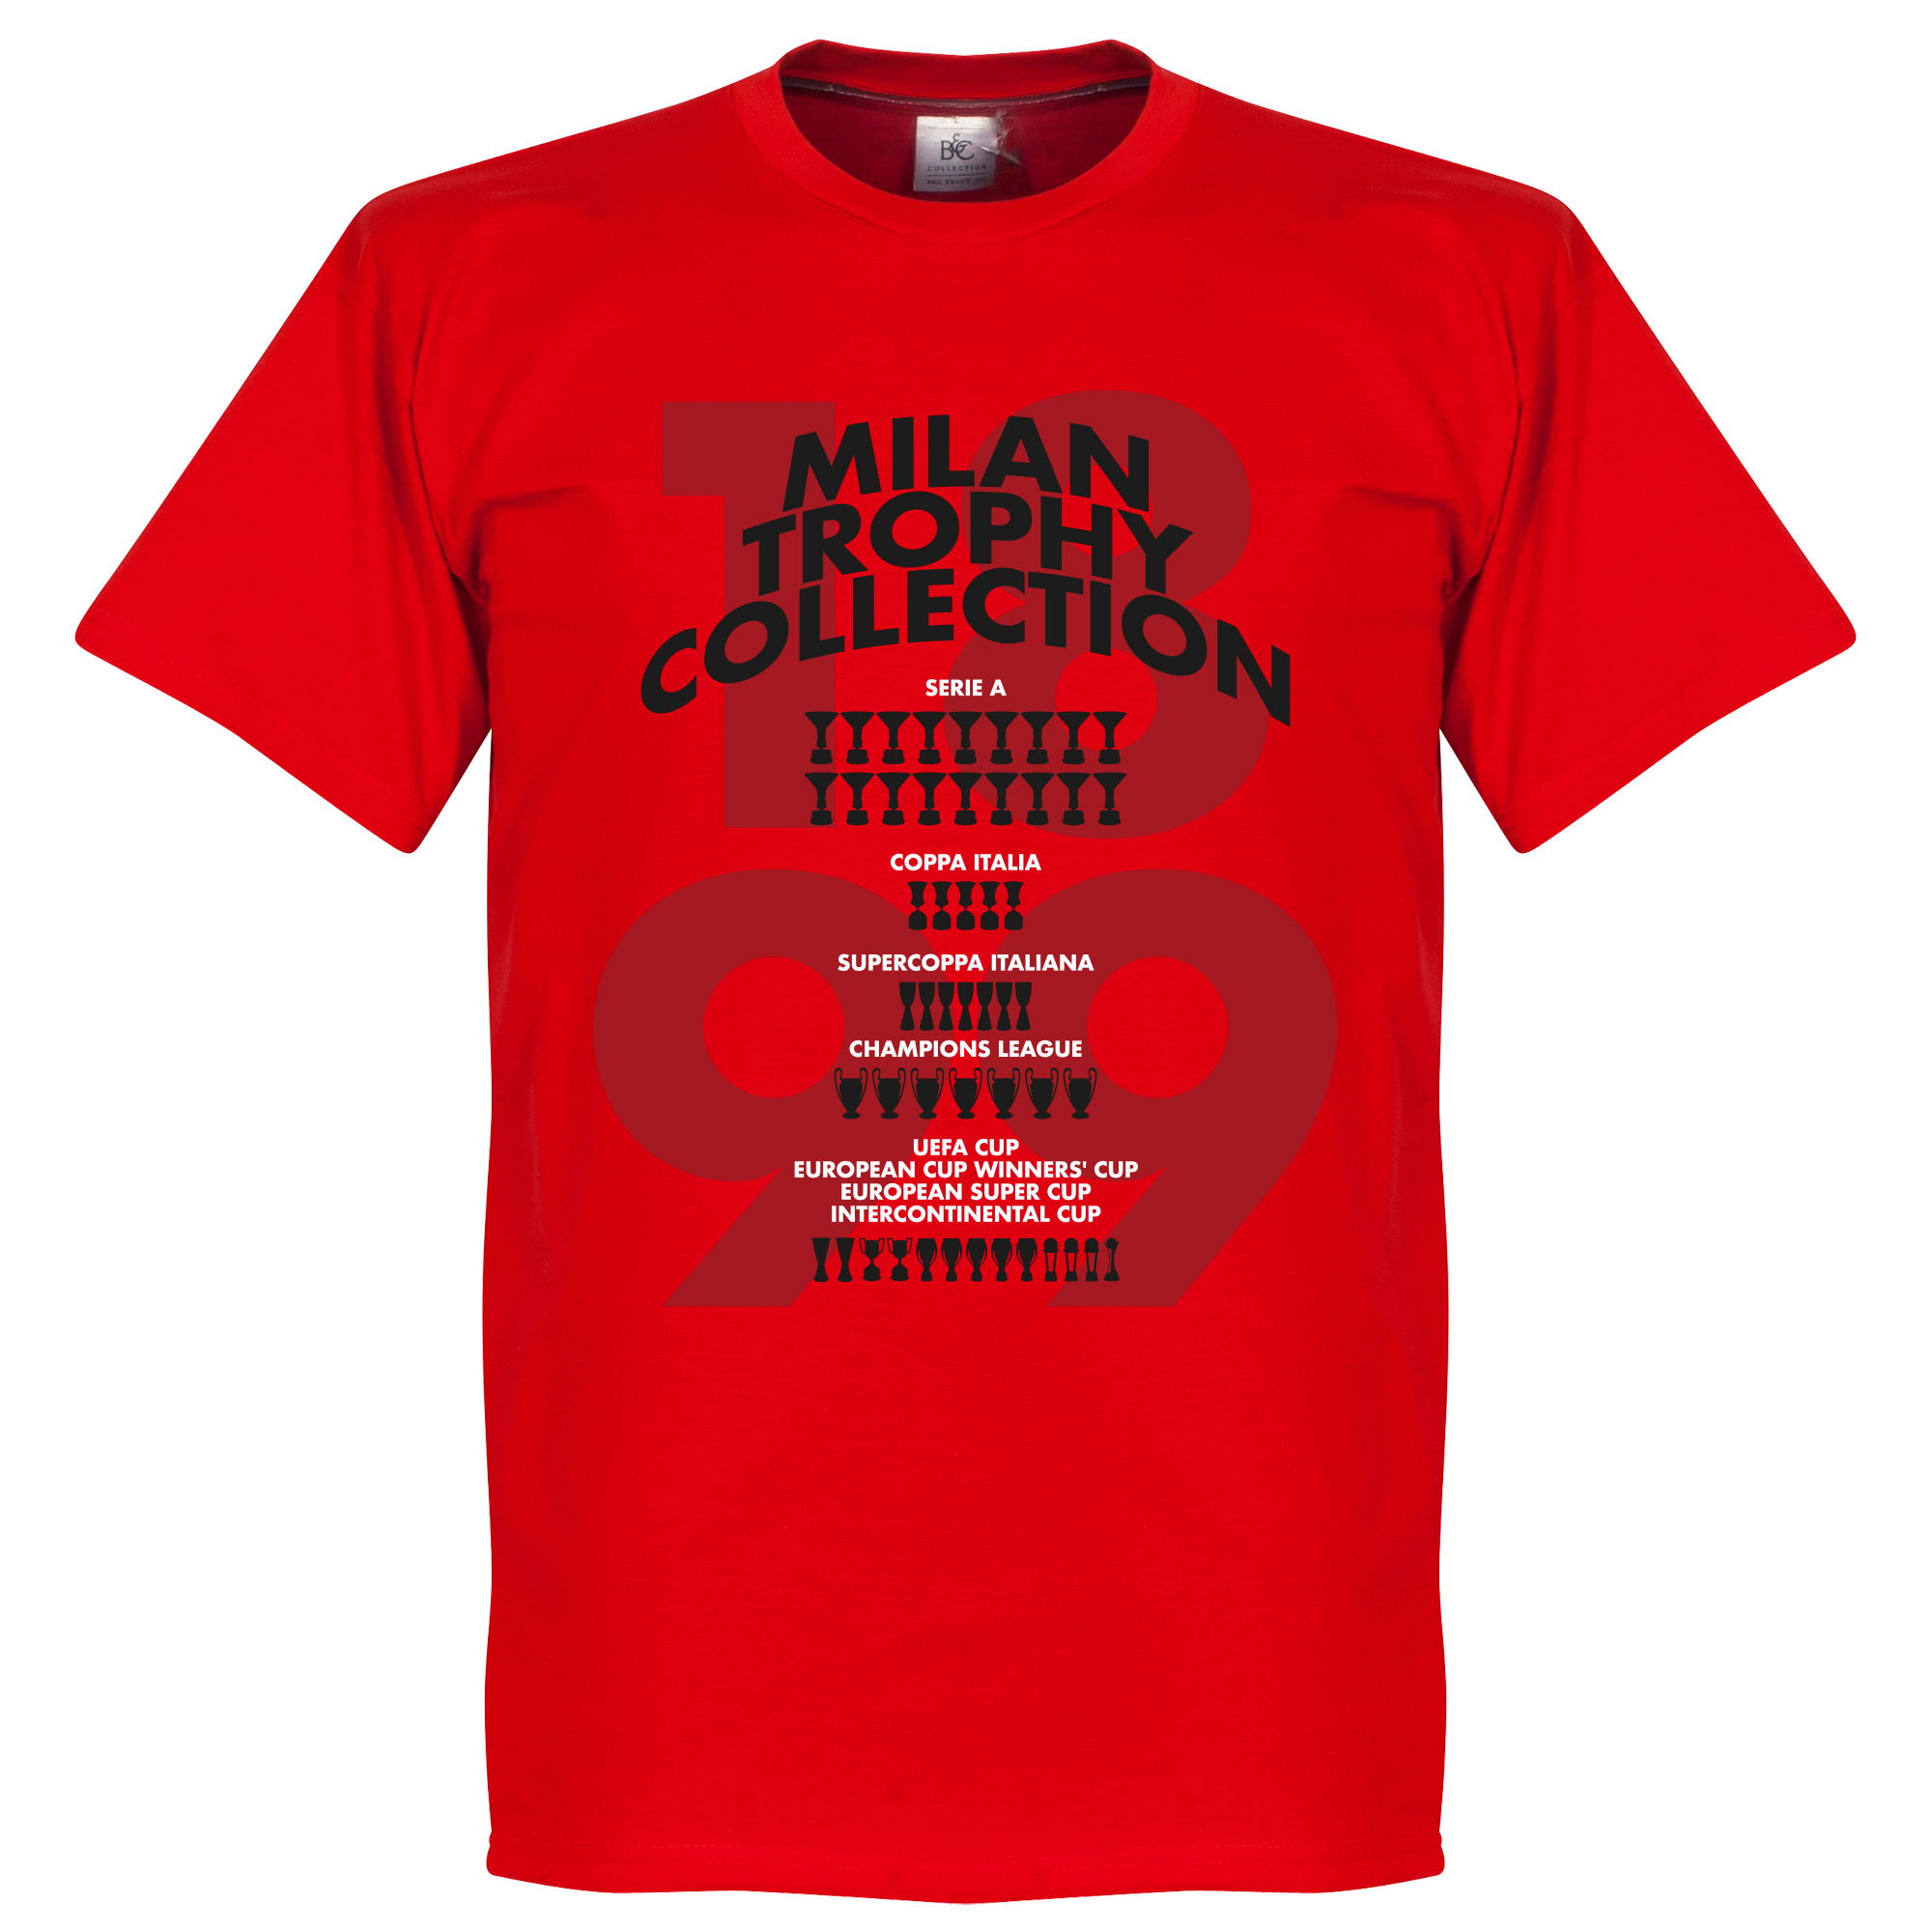 Milan Trophy Collection Tee - Red - XXL